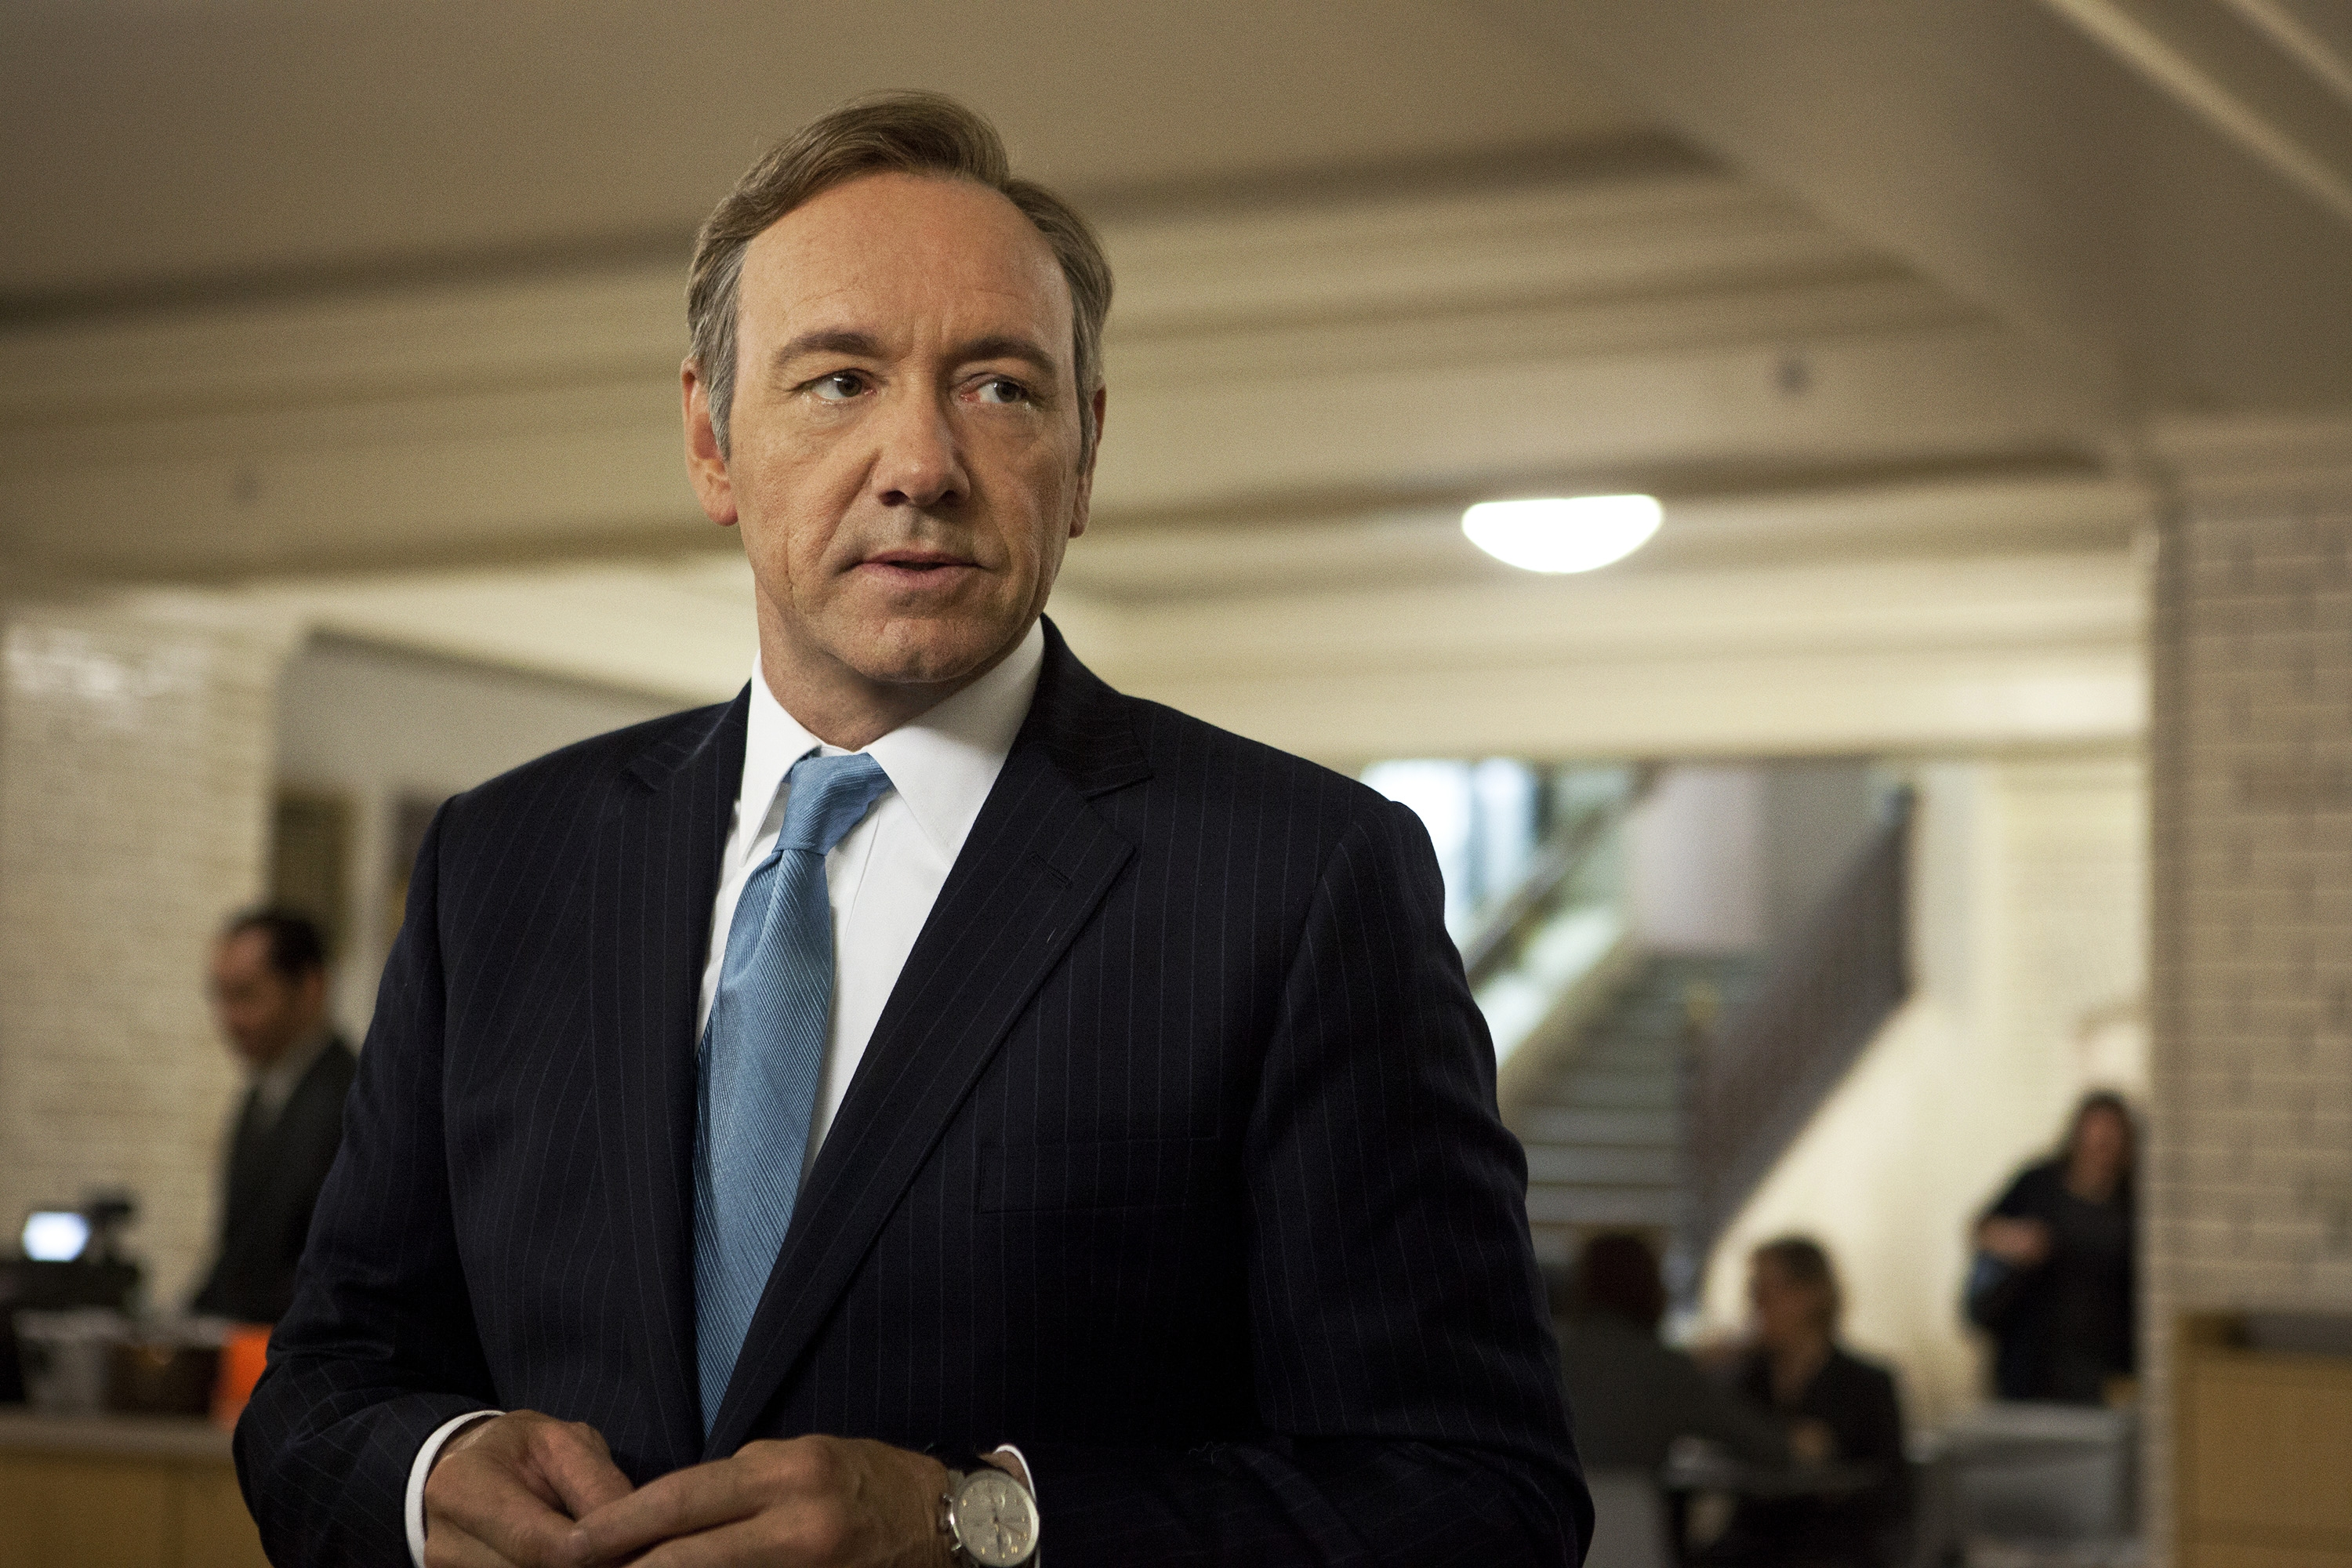 """Kevin Spacey is nominated for the Emmy for outstanding lead actor in a drama for his role as Rep. Frank Underwood in the Netflix series, """"House of Cards."""" Netflix has 31 Emmy nominations this year."""